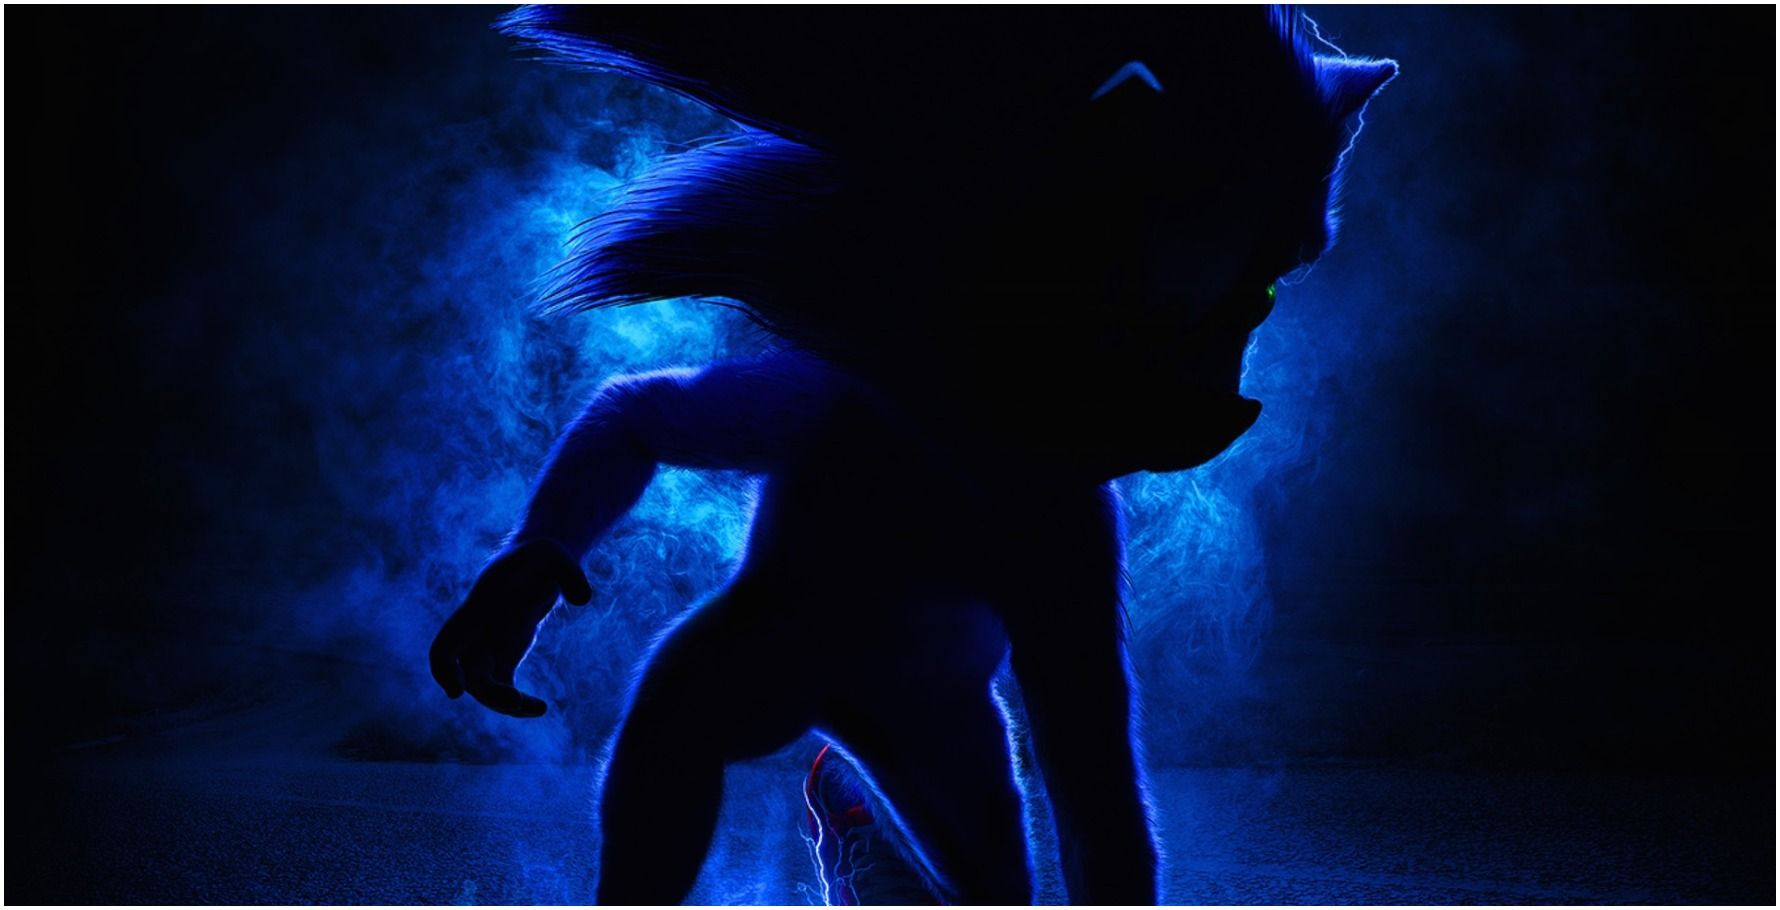 Sonic The Hedgehog Trailer Music What Song Plays In The Teaser